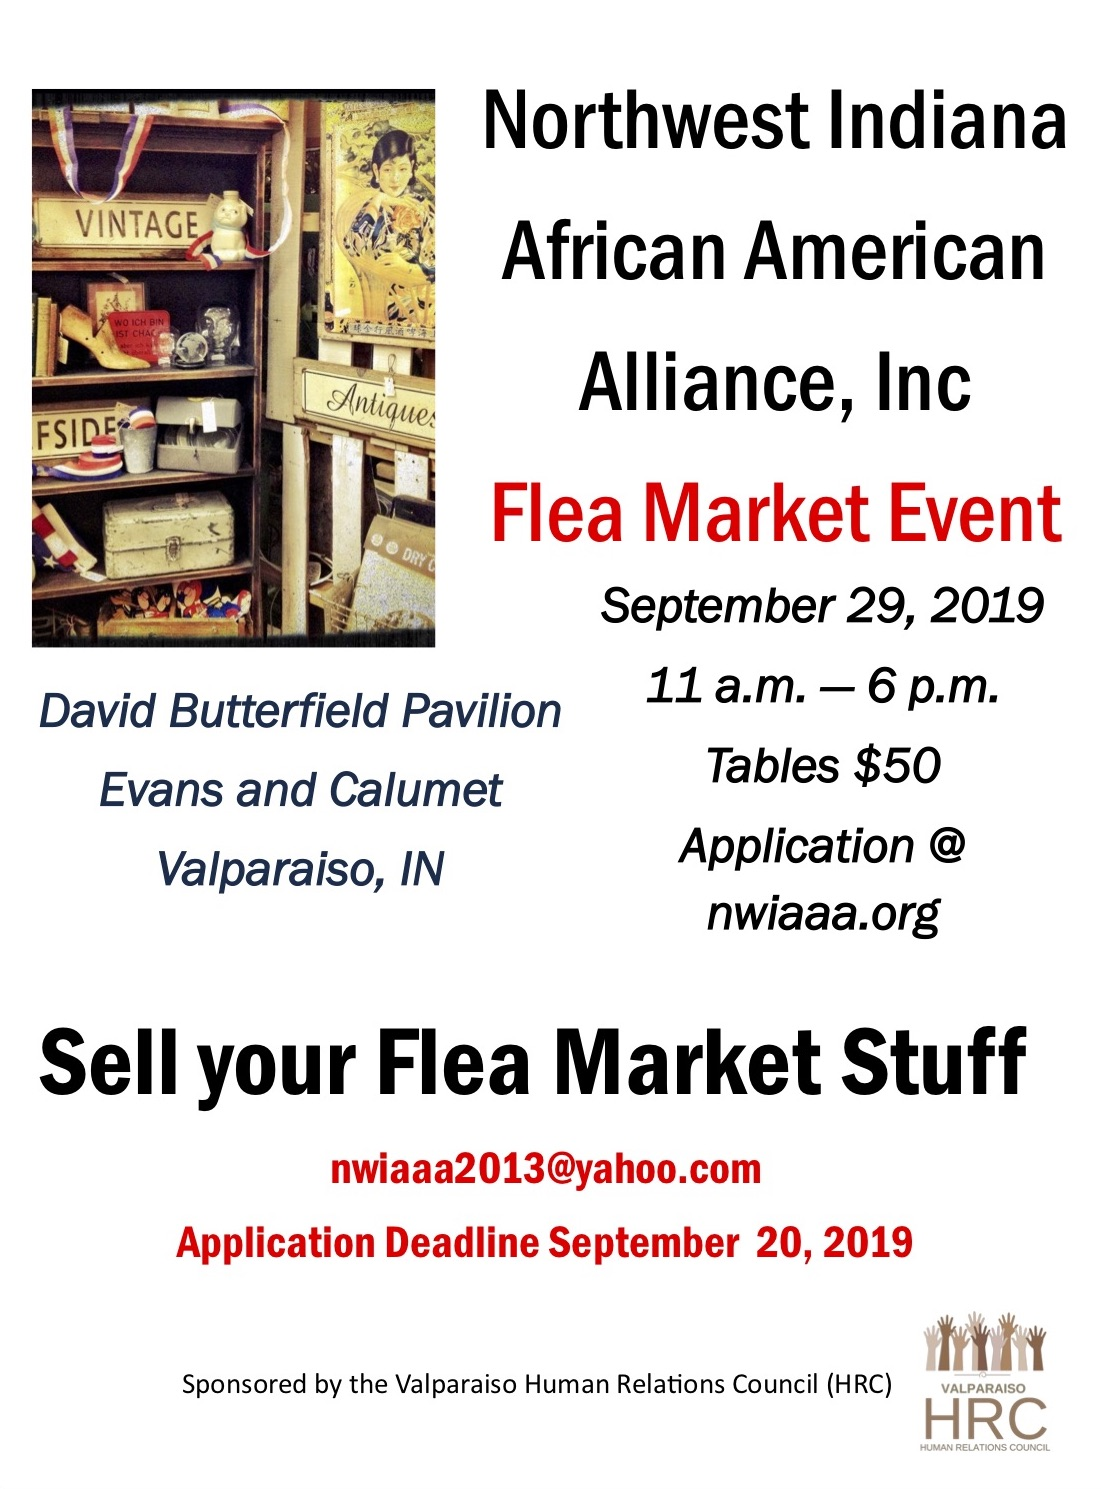 Flea Market Fundraiser Event for Northwest Indiana African American Alliance